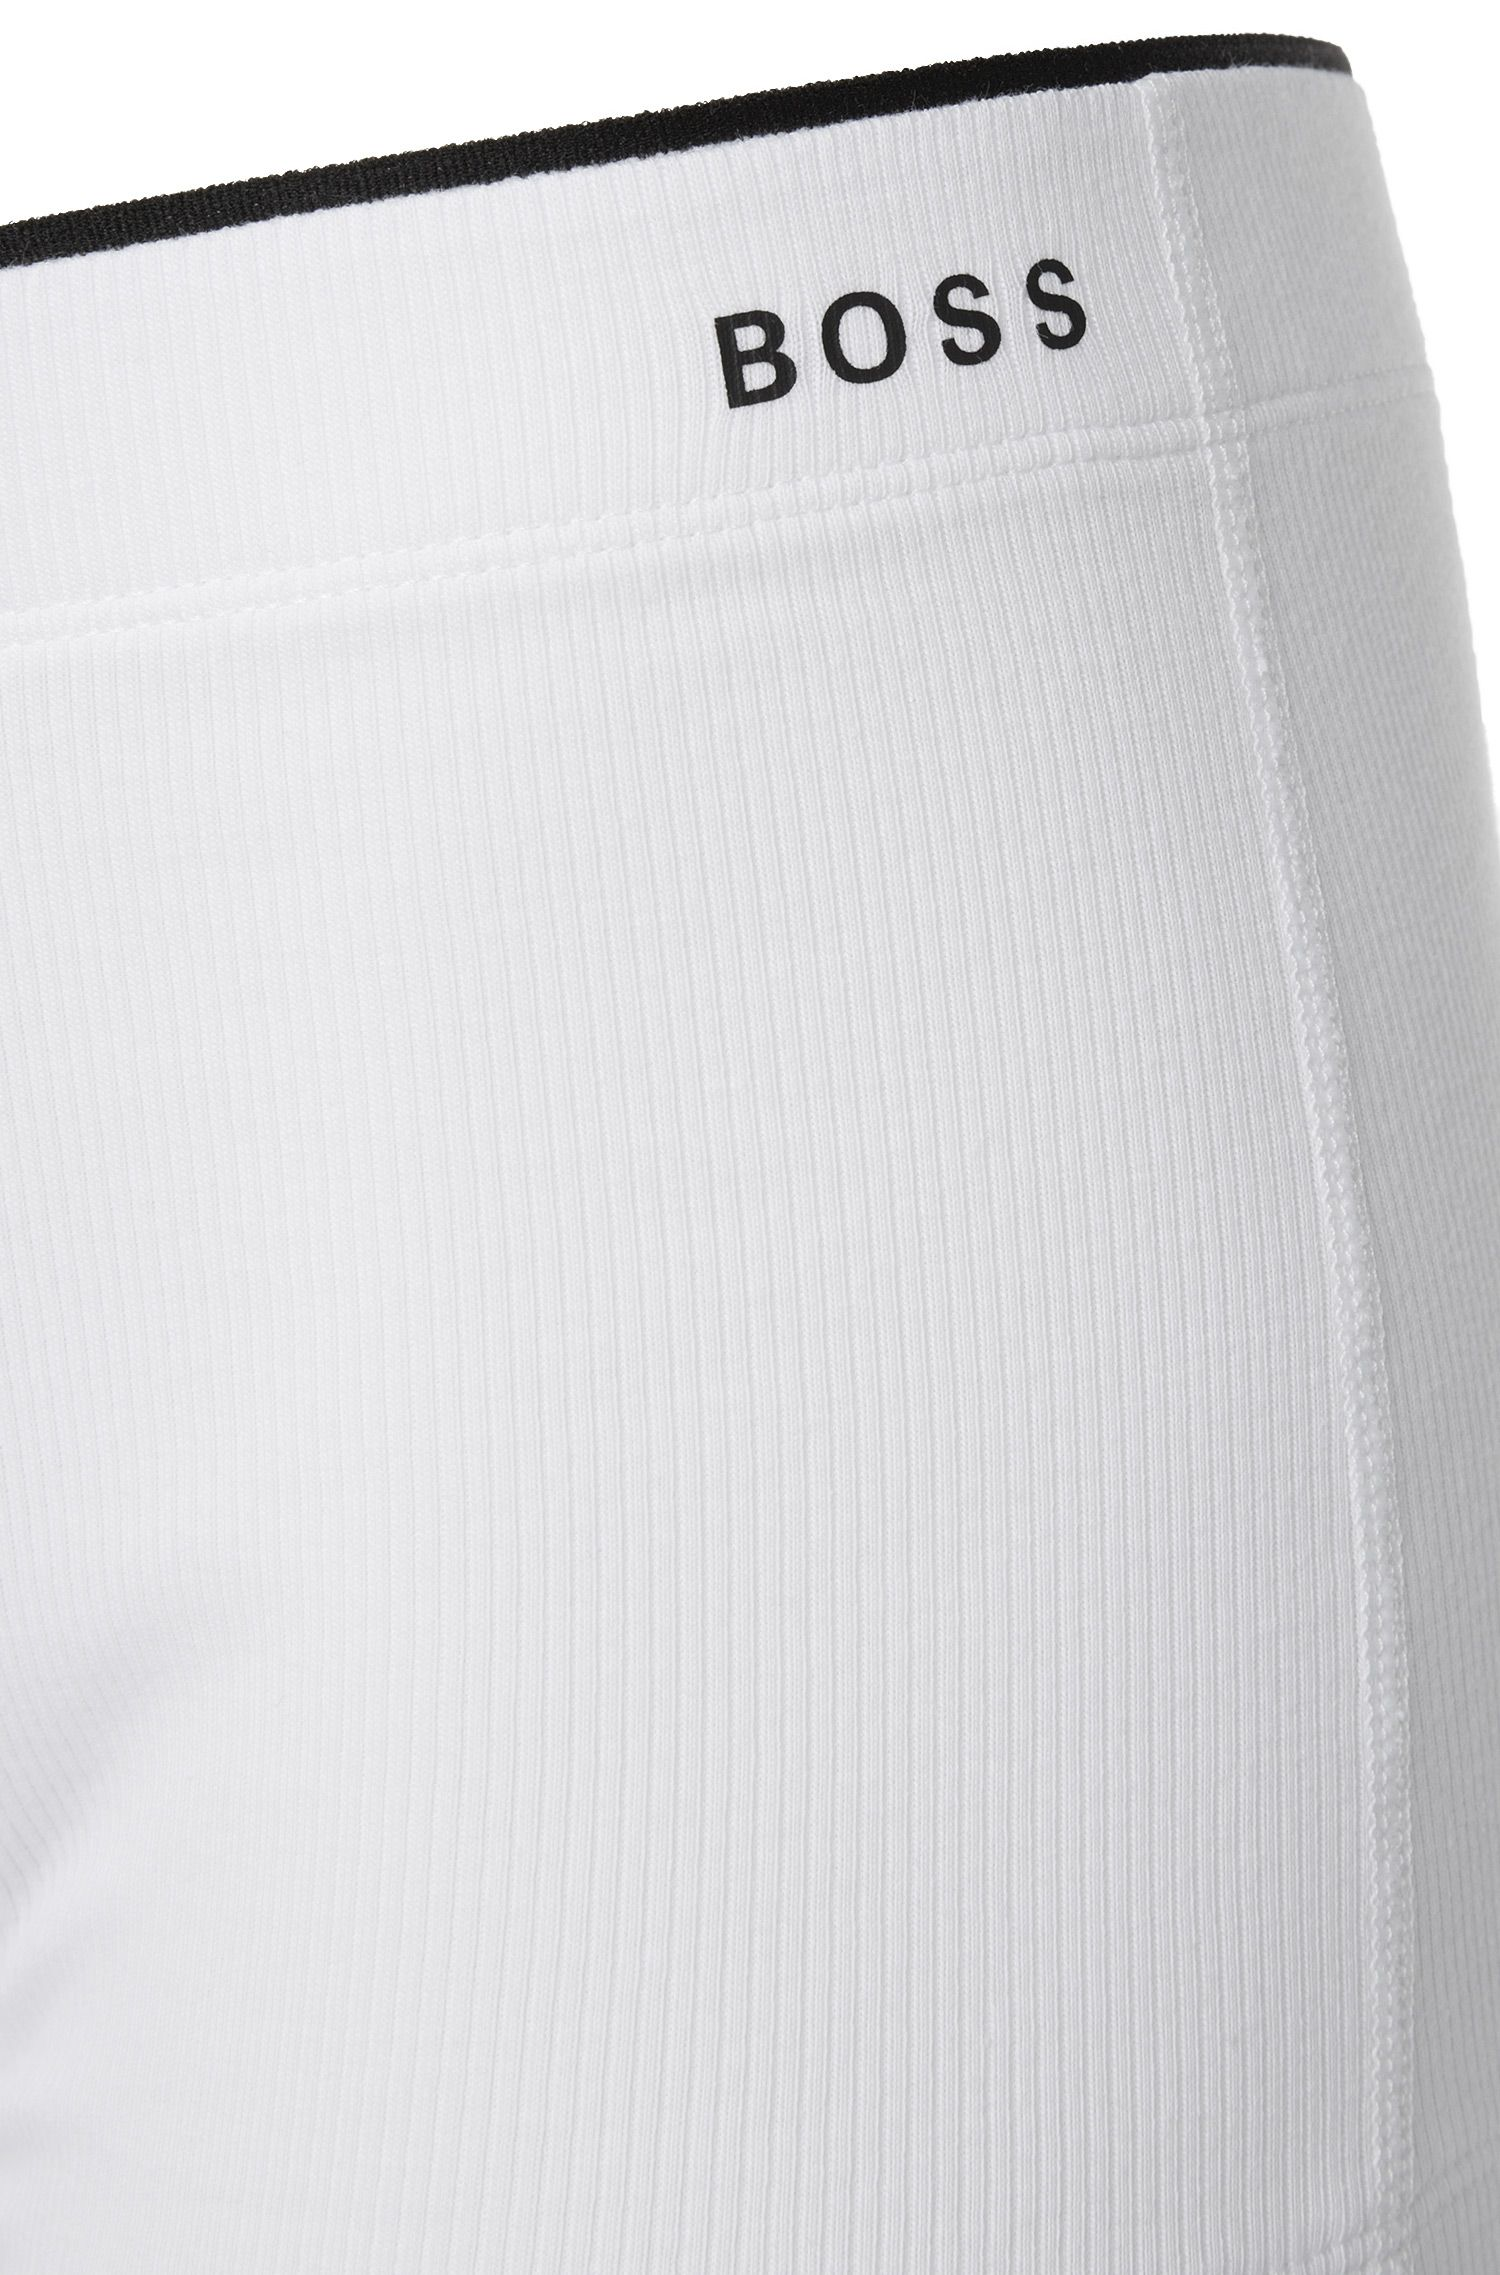 Regular-rise boxer briefs in ribbed stretch cotton, White